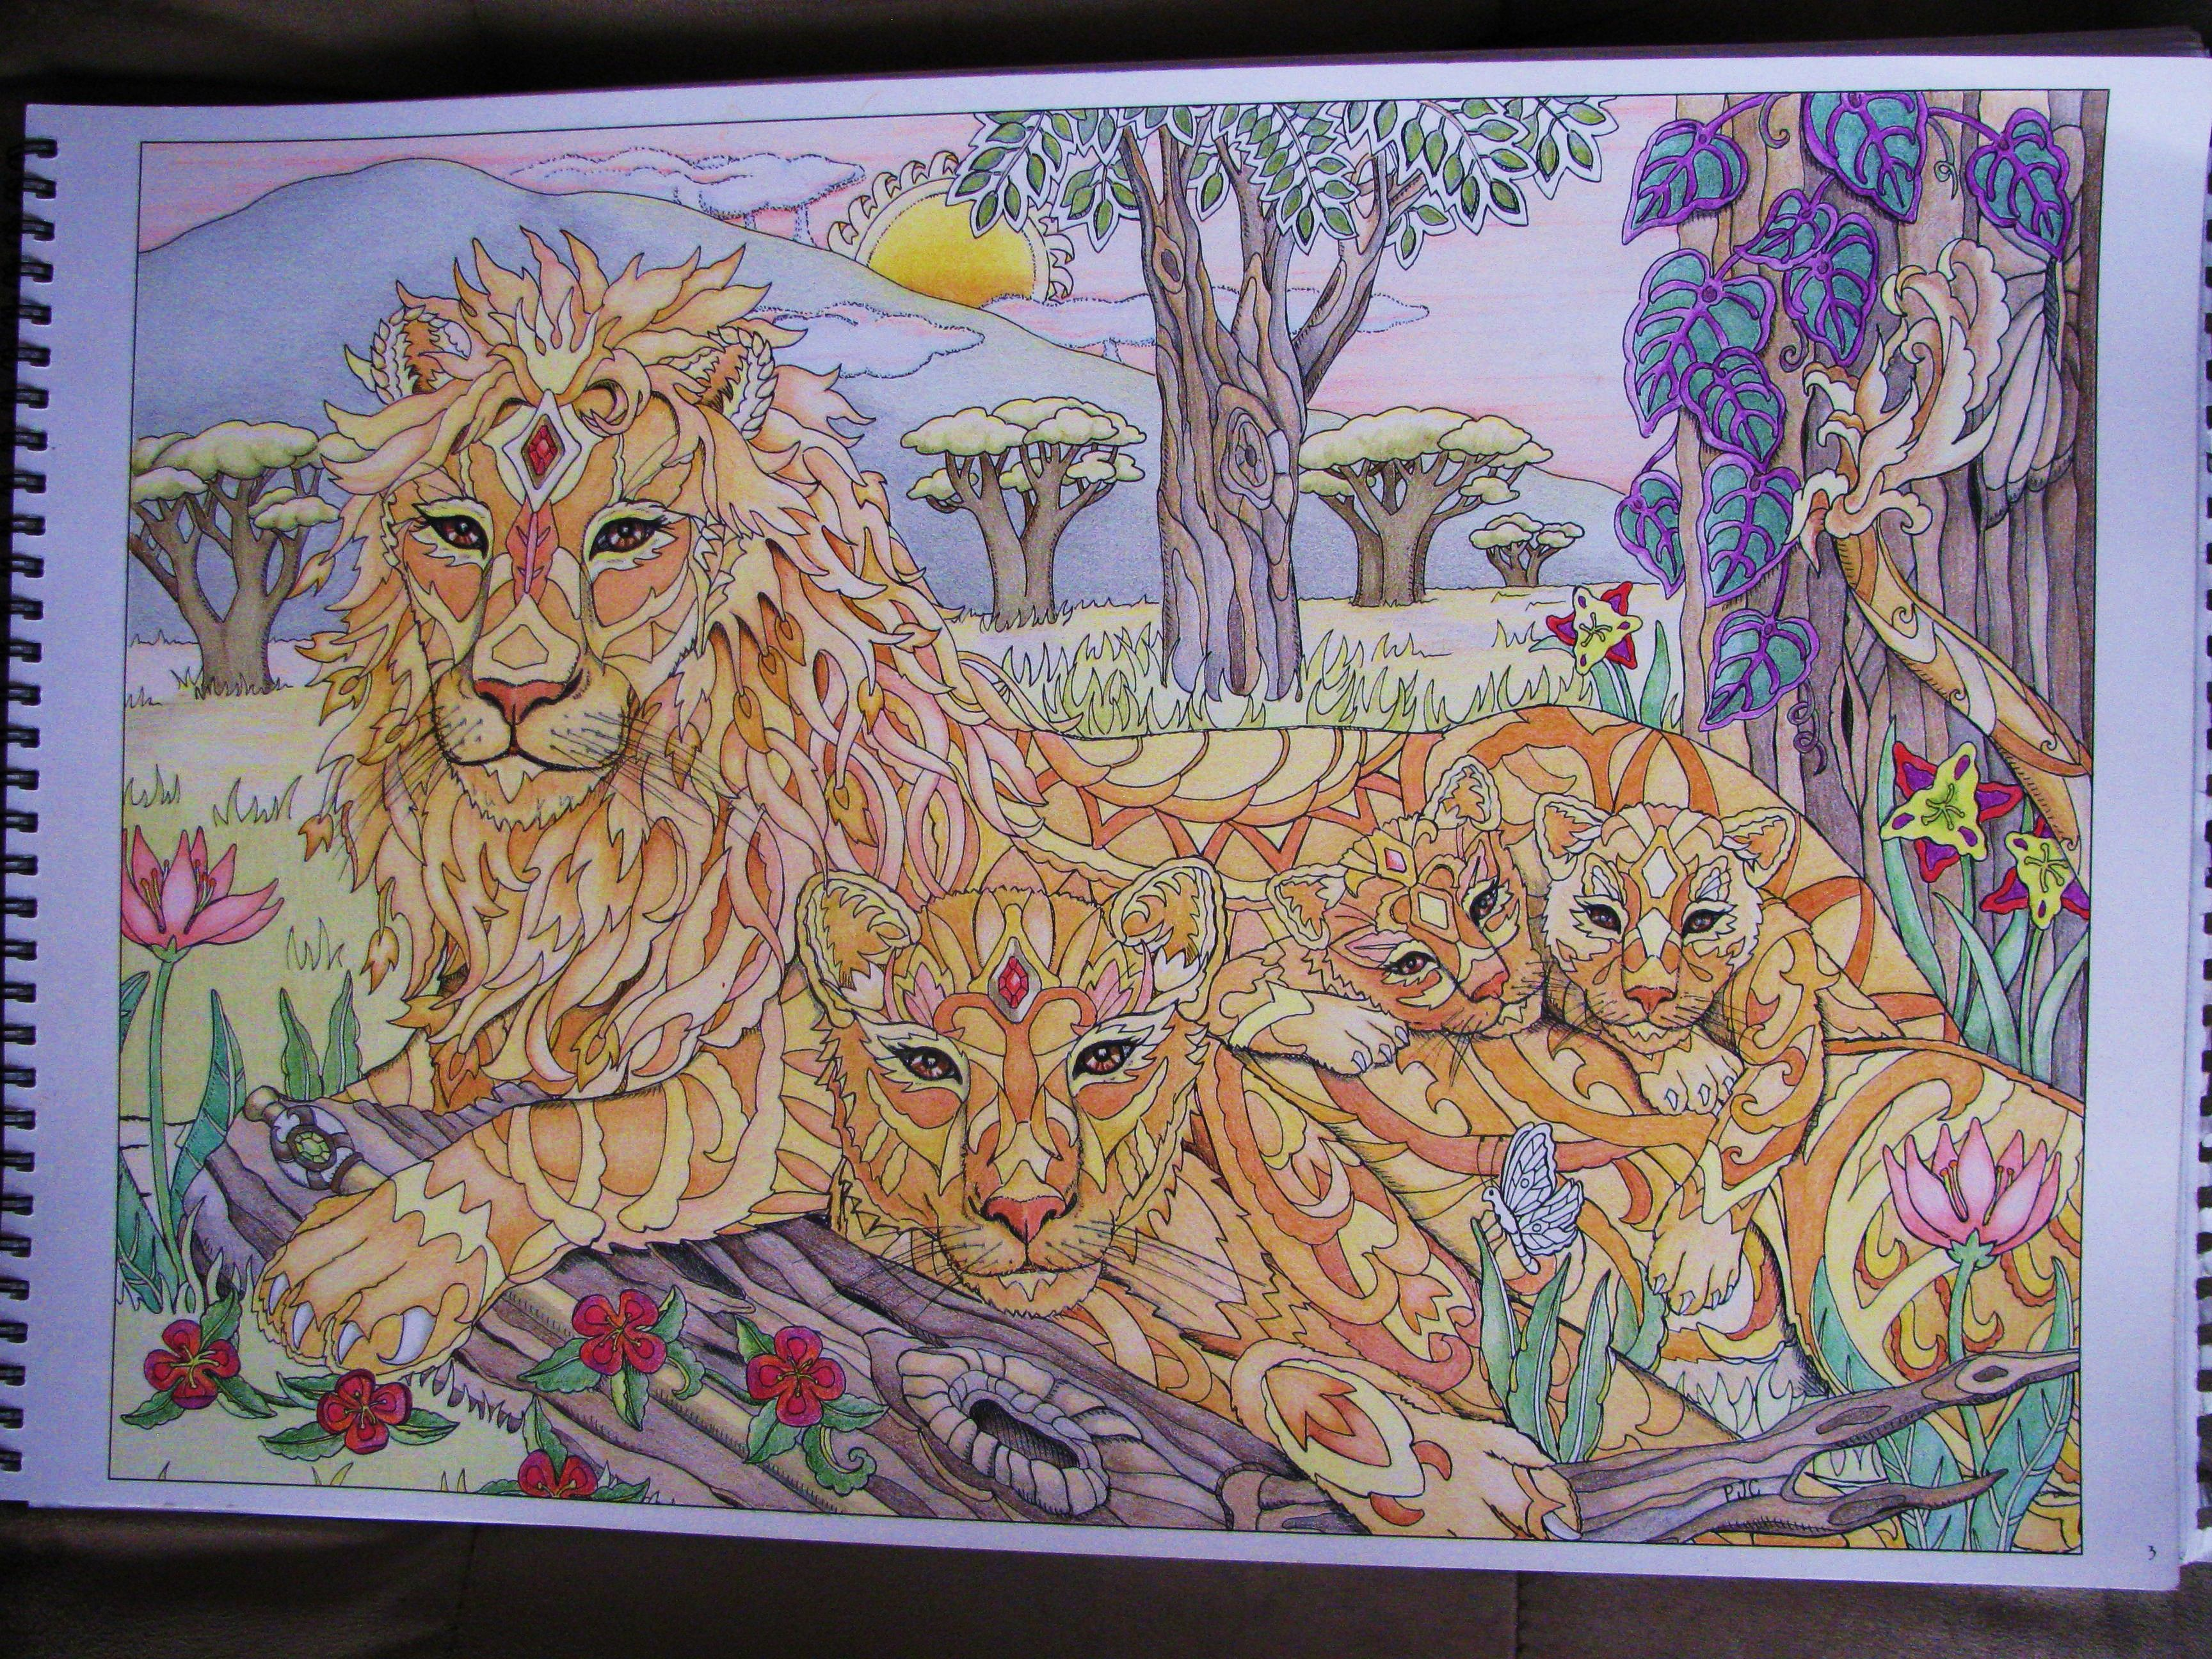 From The Coloring Book Color Me 2 By Pam Smart Books Can Be Obtained At Pjcsmrtgmailcom